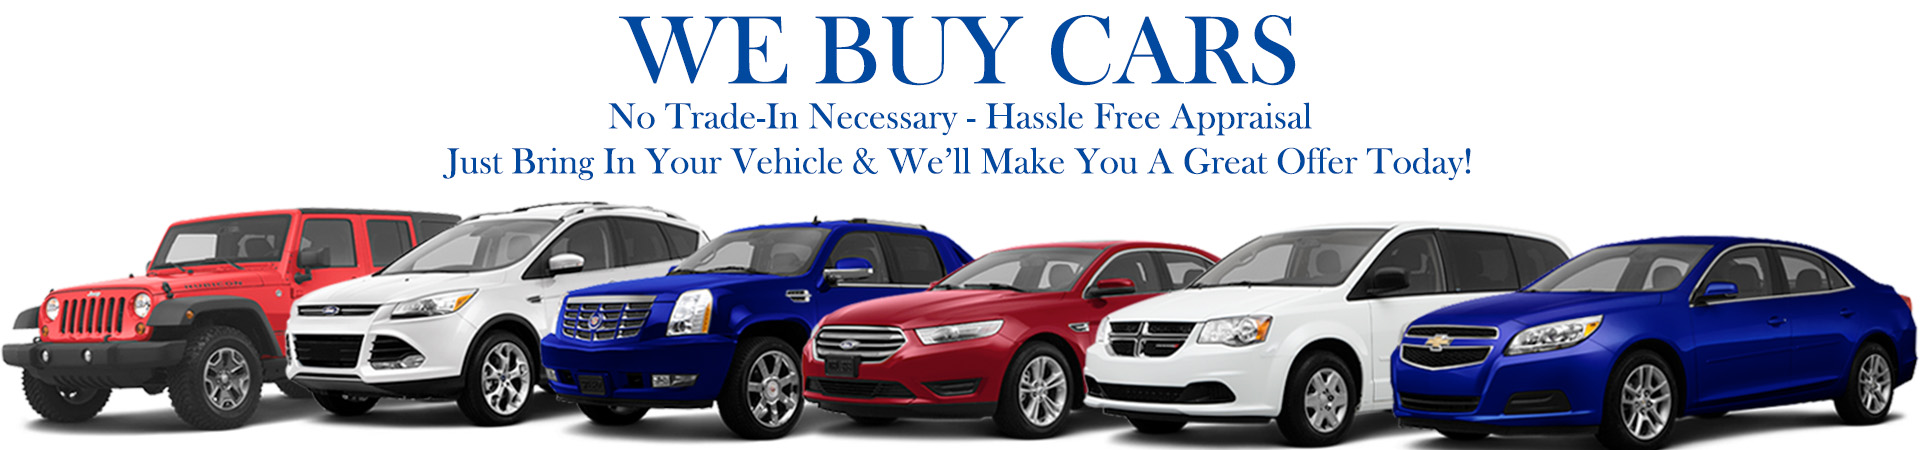 Auto Boyz Used Car Dealer Garden Grove Orange County CA